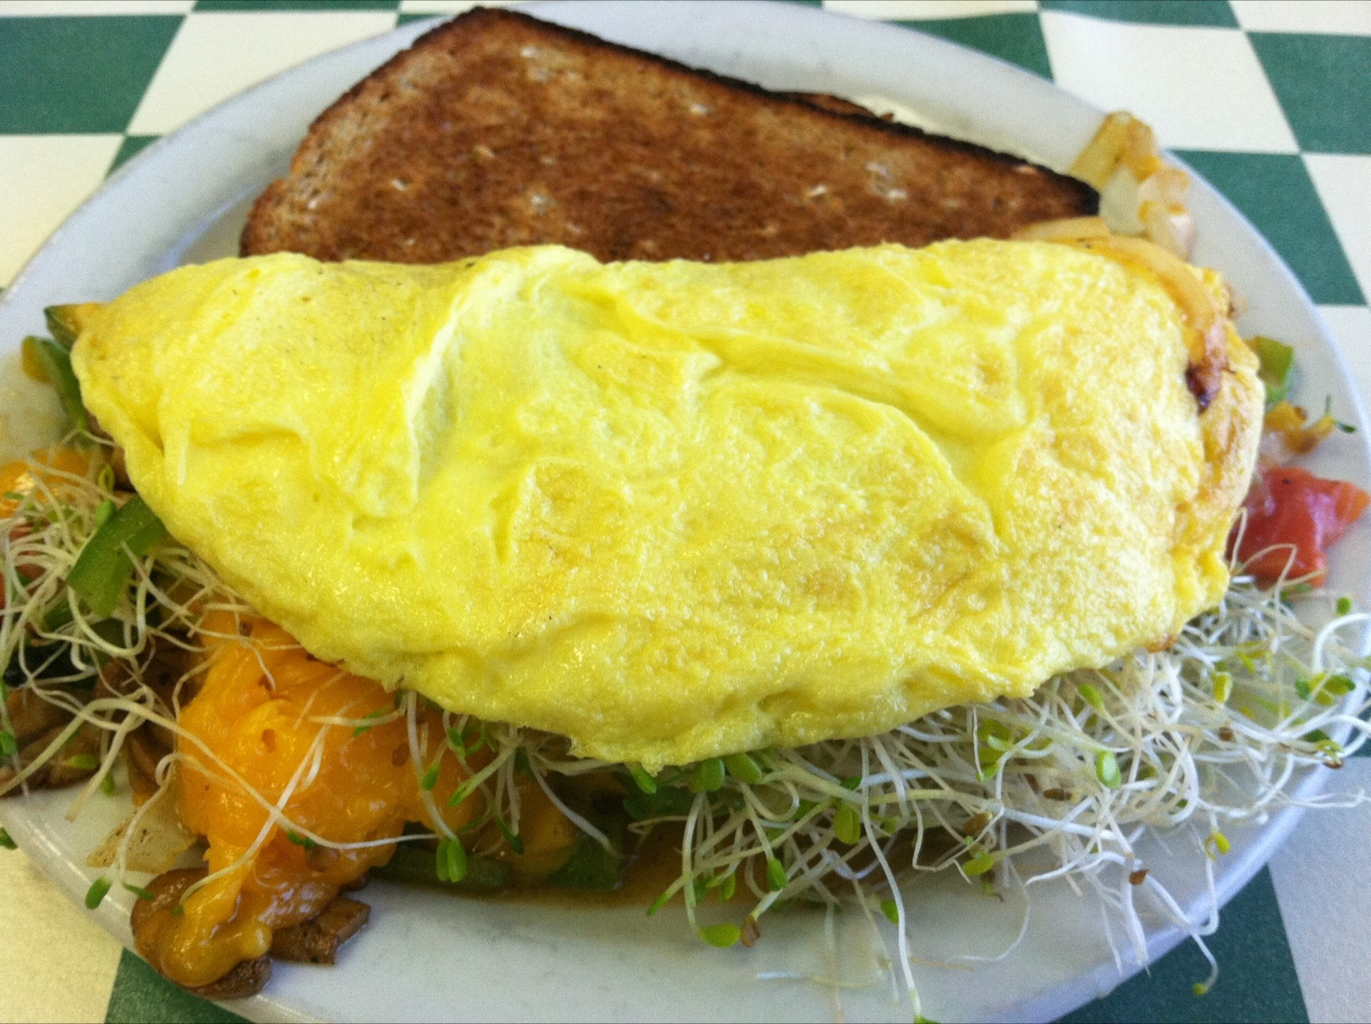 Veggie Omelette from Uptown Cafe